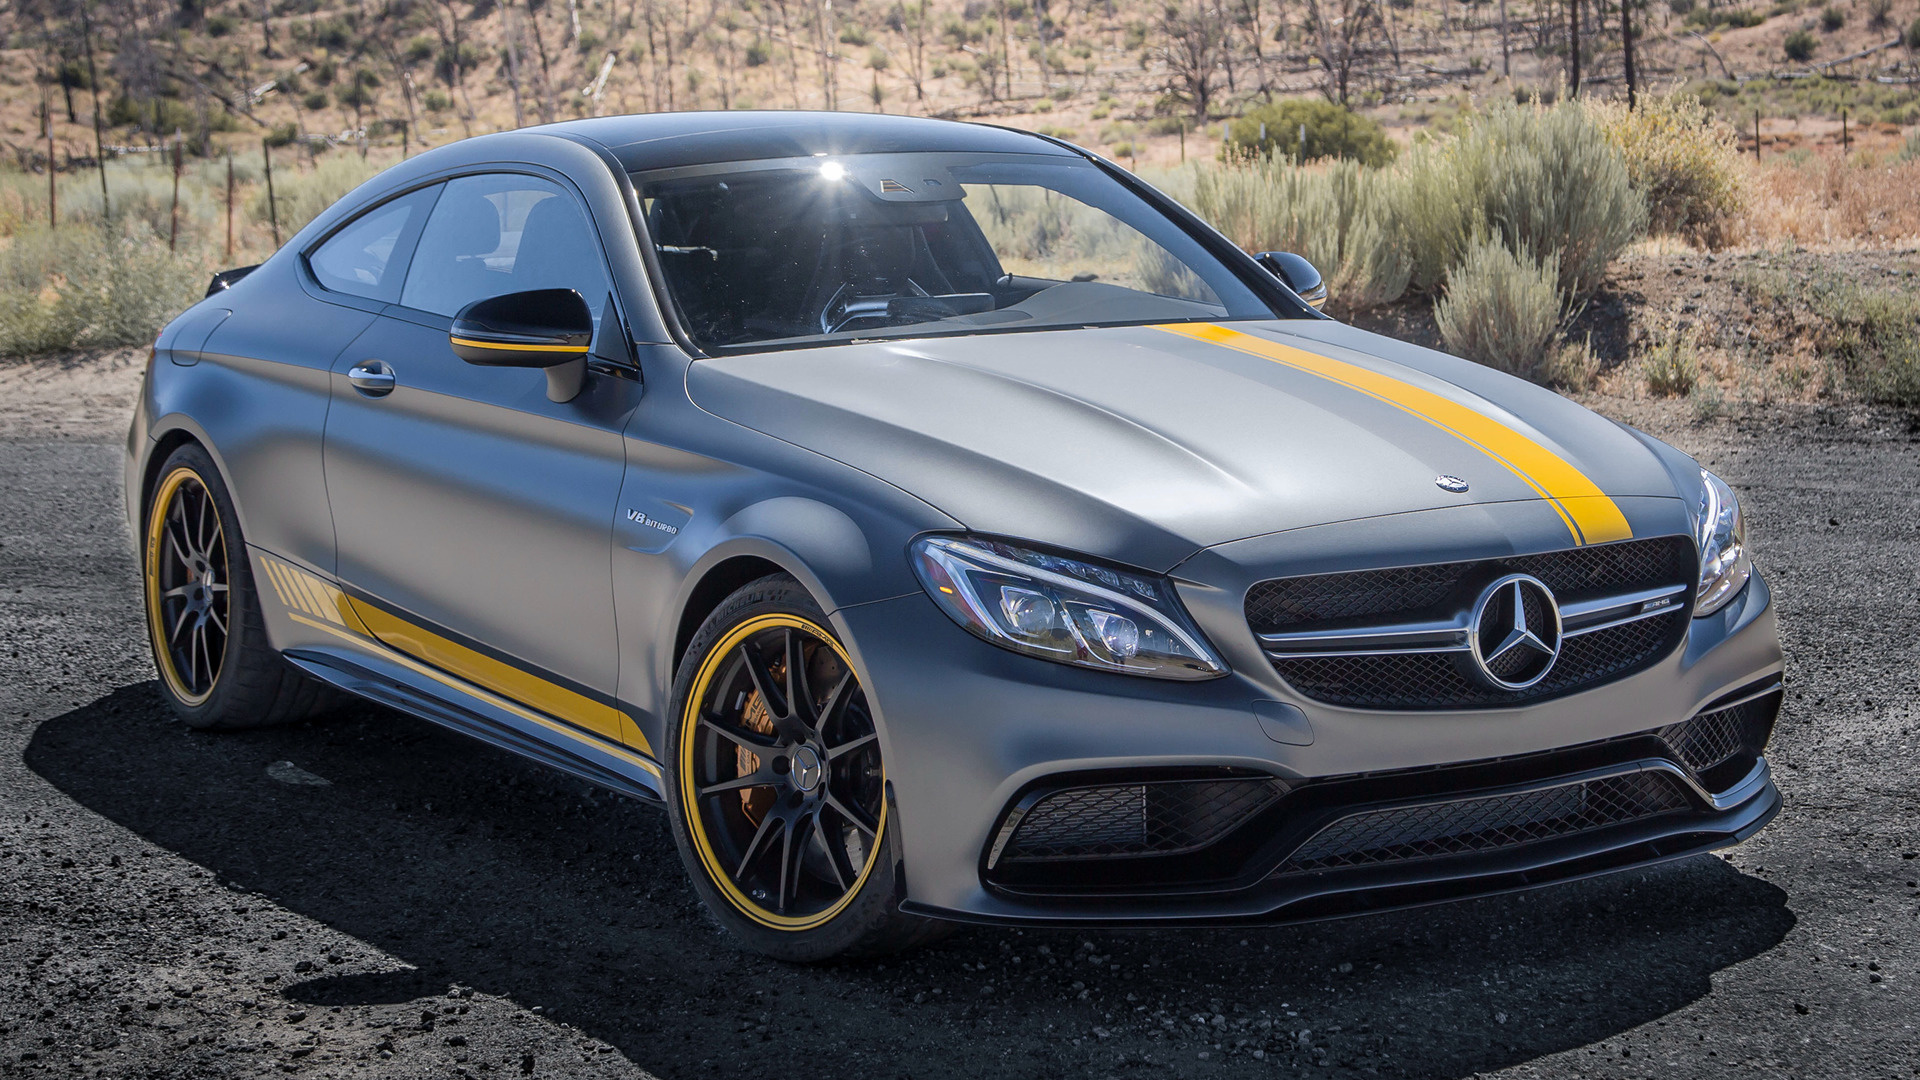 Mercedes-AMG C 63 S Coupe Edition 1 (2017) US Wallpapers and HD ...